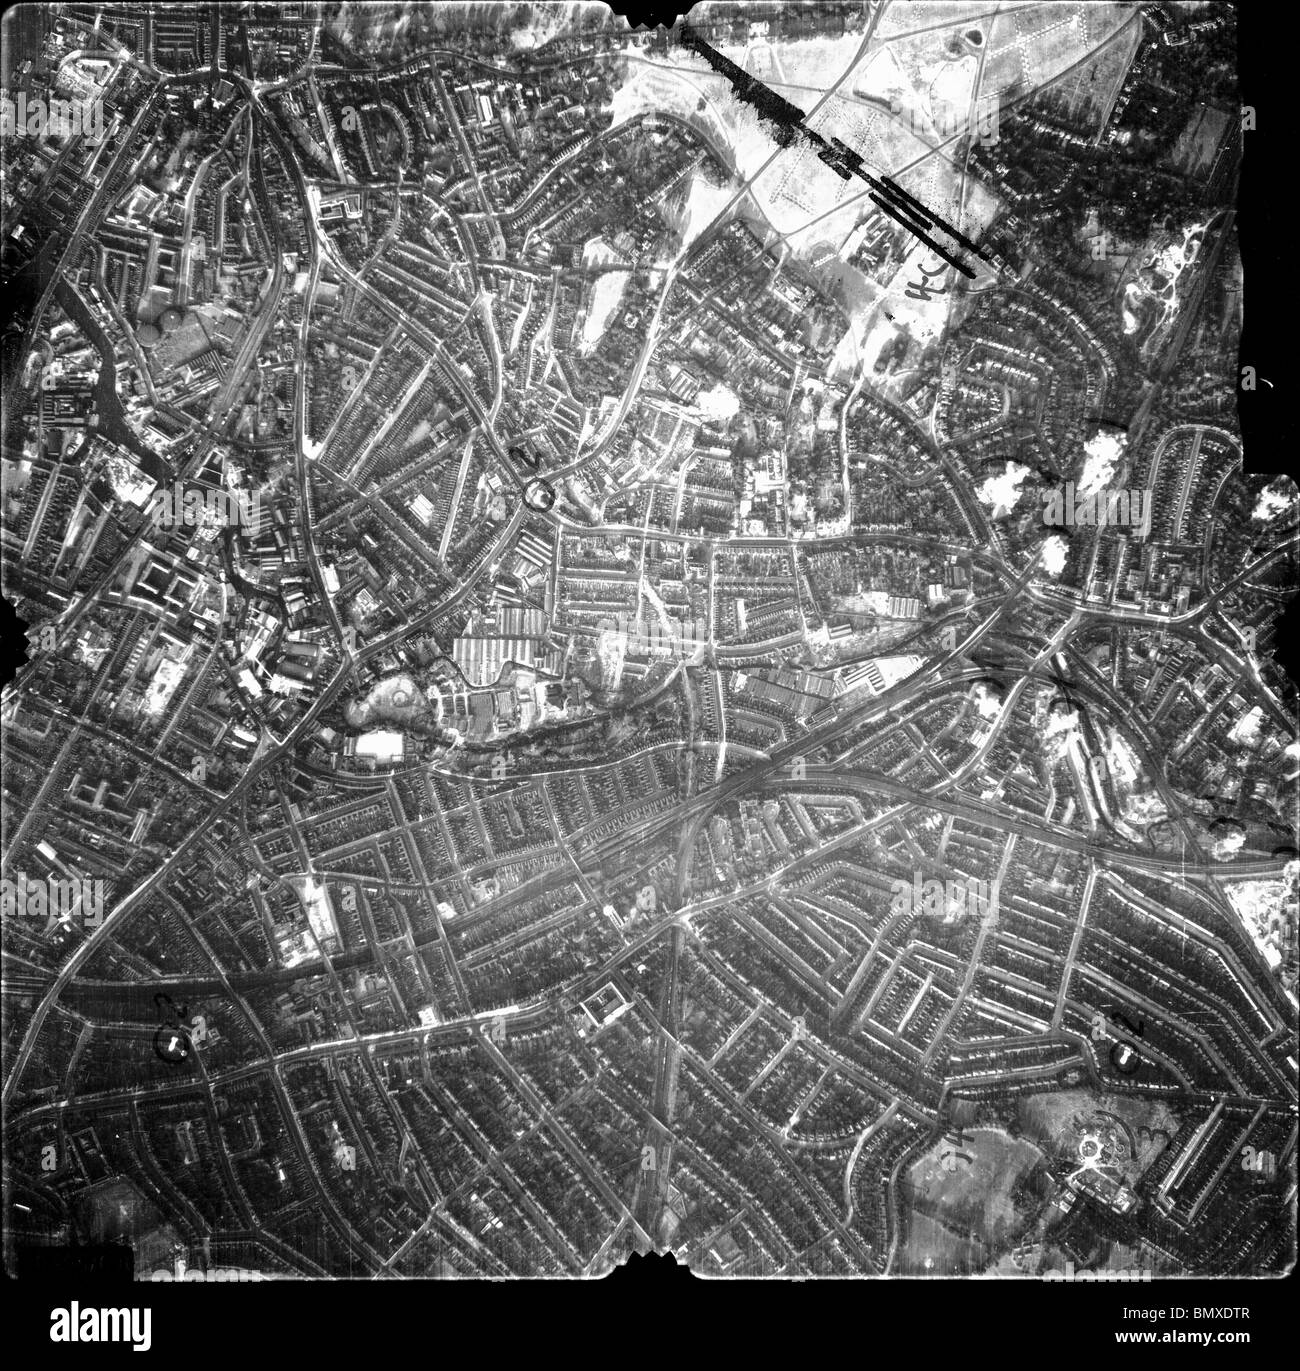 bombing london the london blitz essay This was the beginning of the blitz - a period of intense bombing of london and other cities that continued until the following may for the next consecutive 57 days.